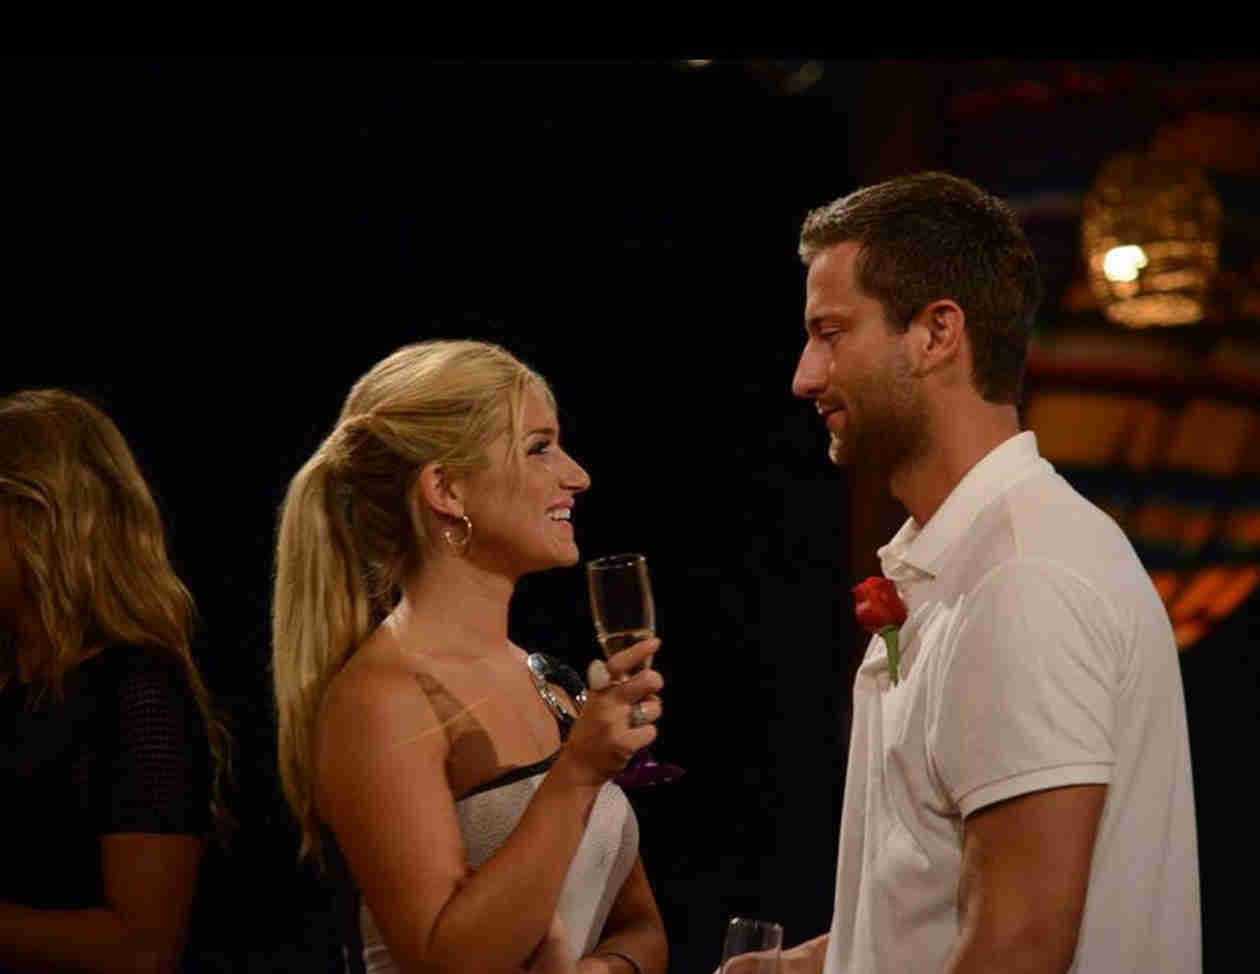 Elise Mosca Defends Leaving Bachelor in Paradise With Chris Bukowski